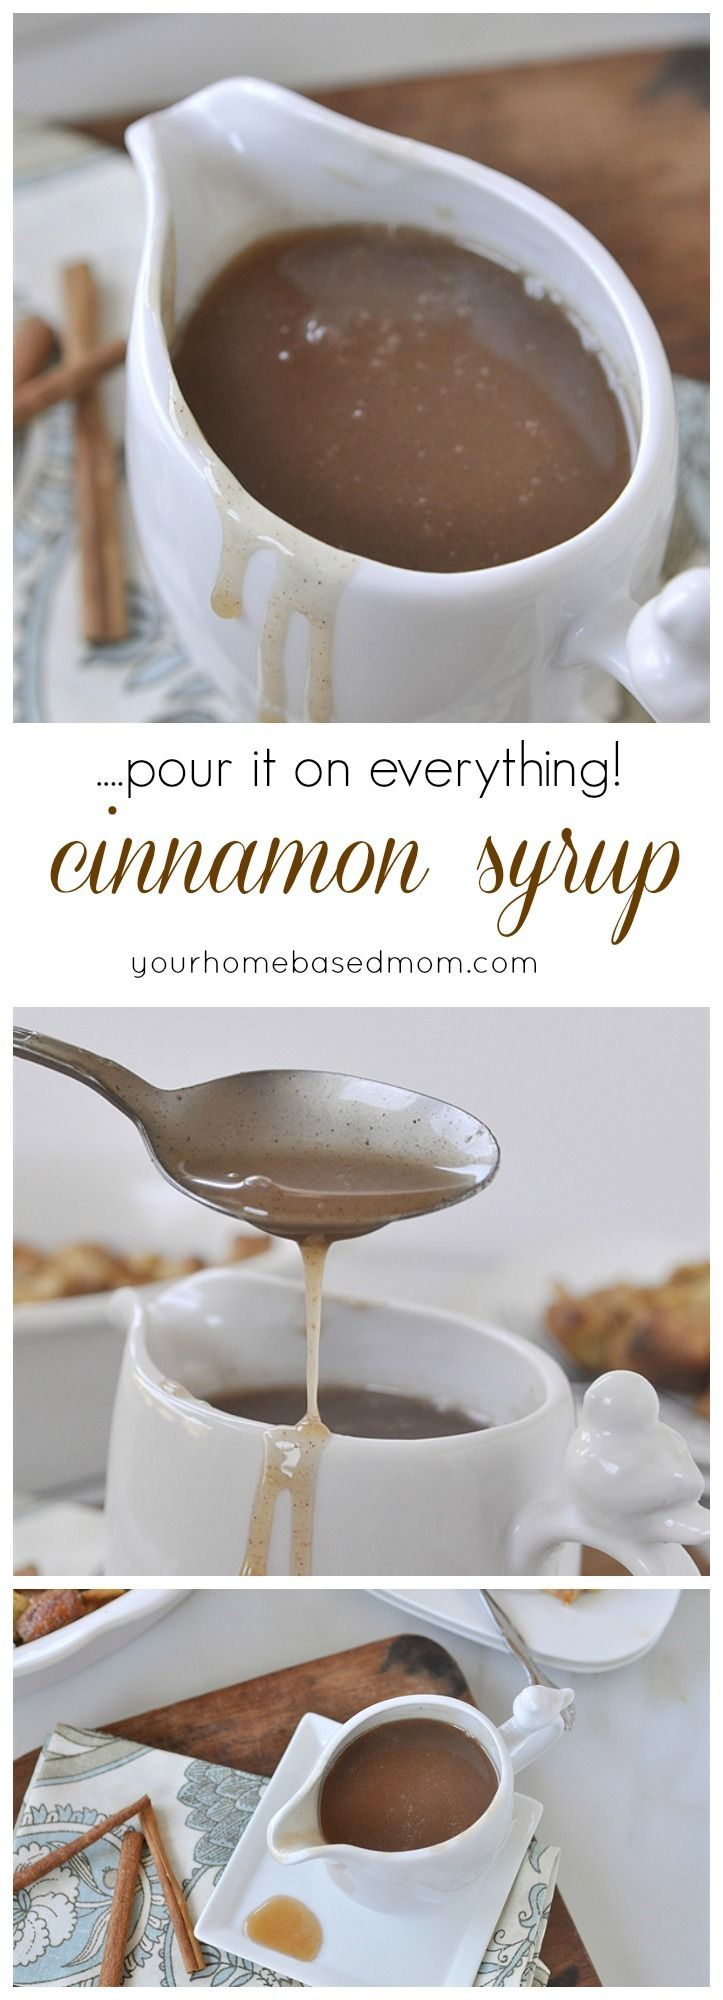 Cinnamon Syrup is delicious on everything!